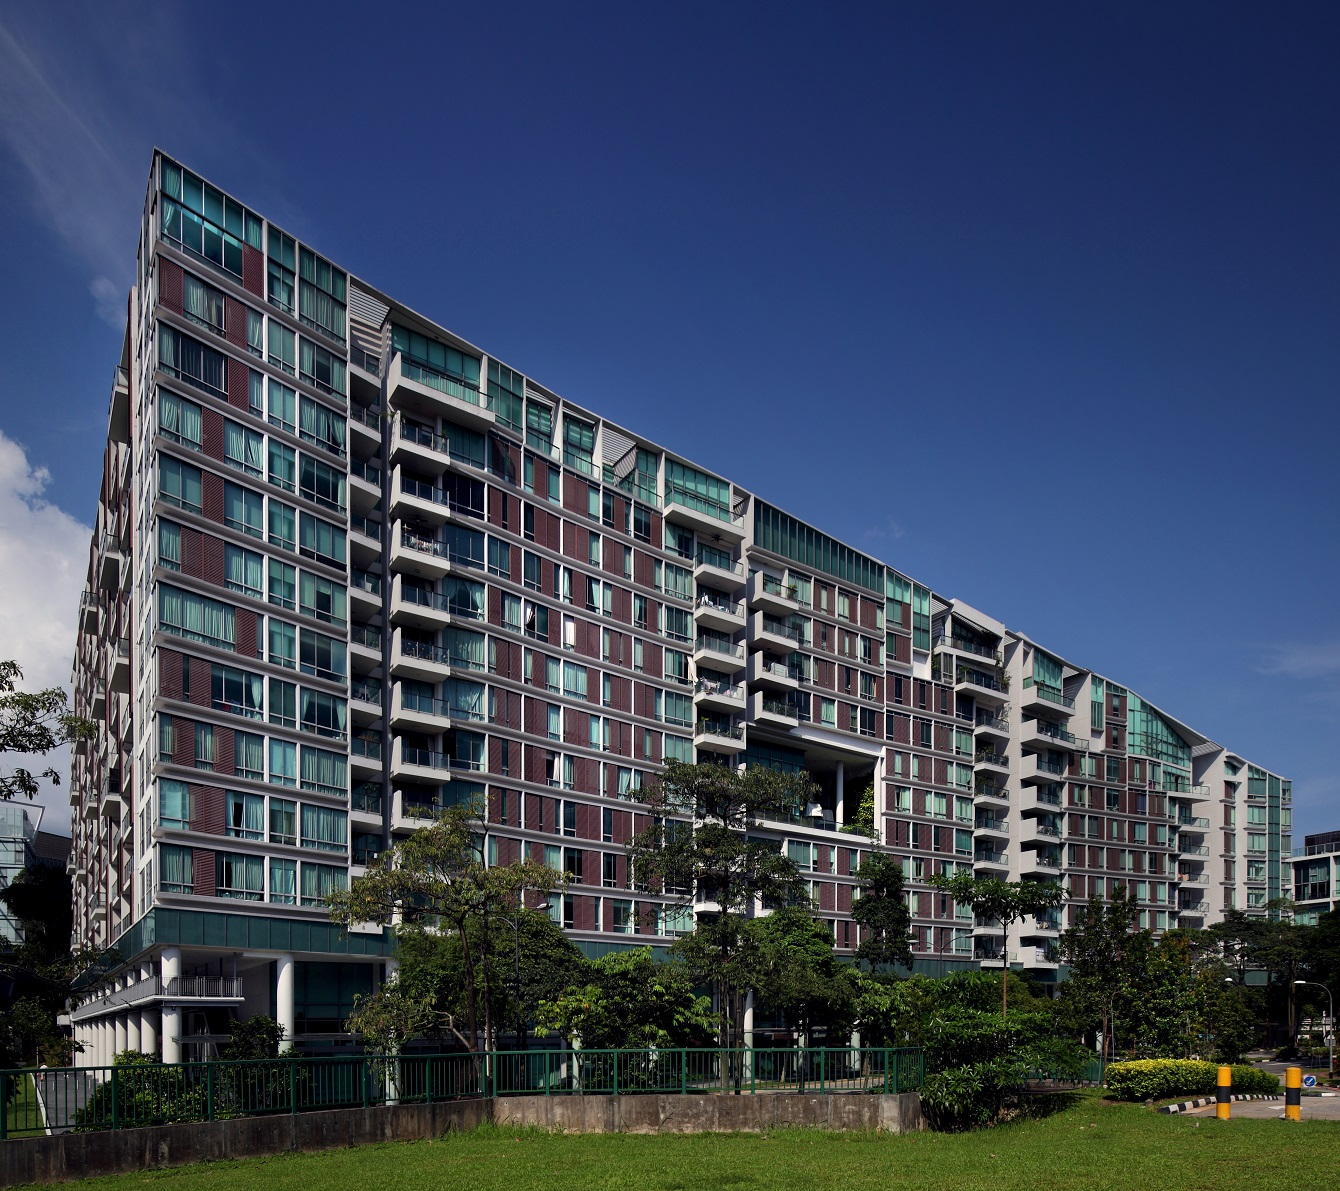 ONE NORTH - The last residential site that was sold in one-north was in 2005, the site of one-north Residences next door (Photo: Samuel Isaac Chua/EdgeProp Singapore)  - EDGEPROP SINGAPORE